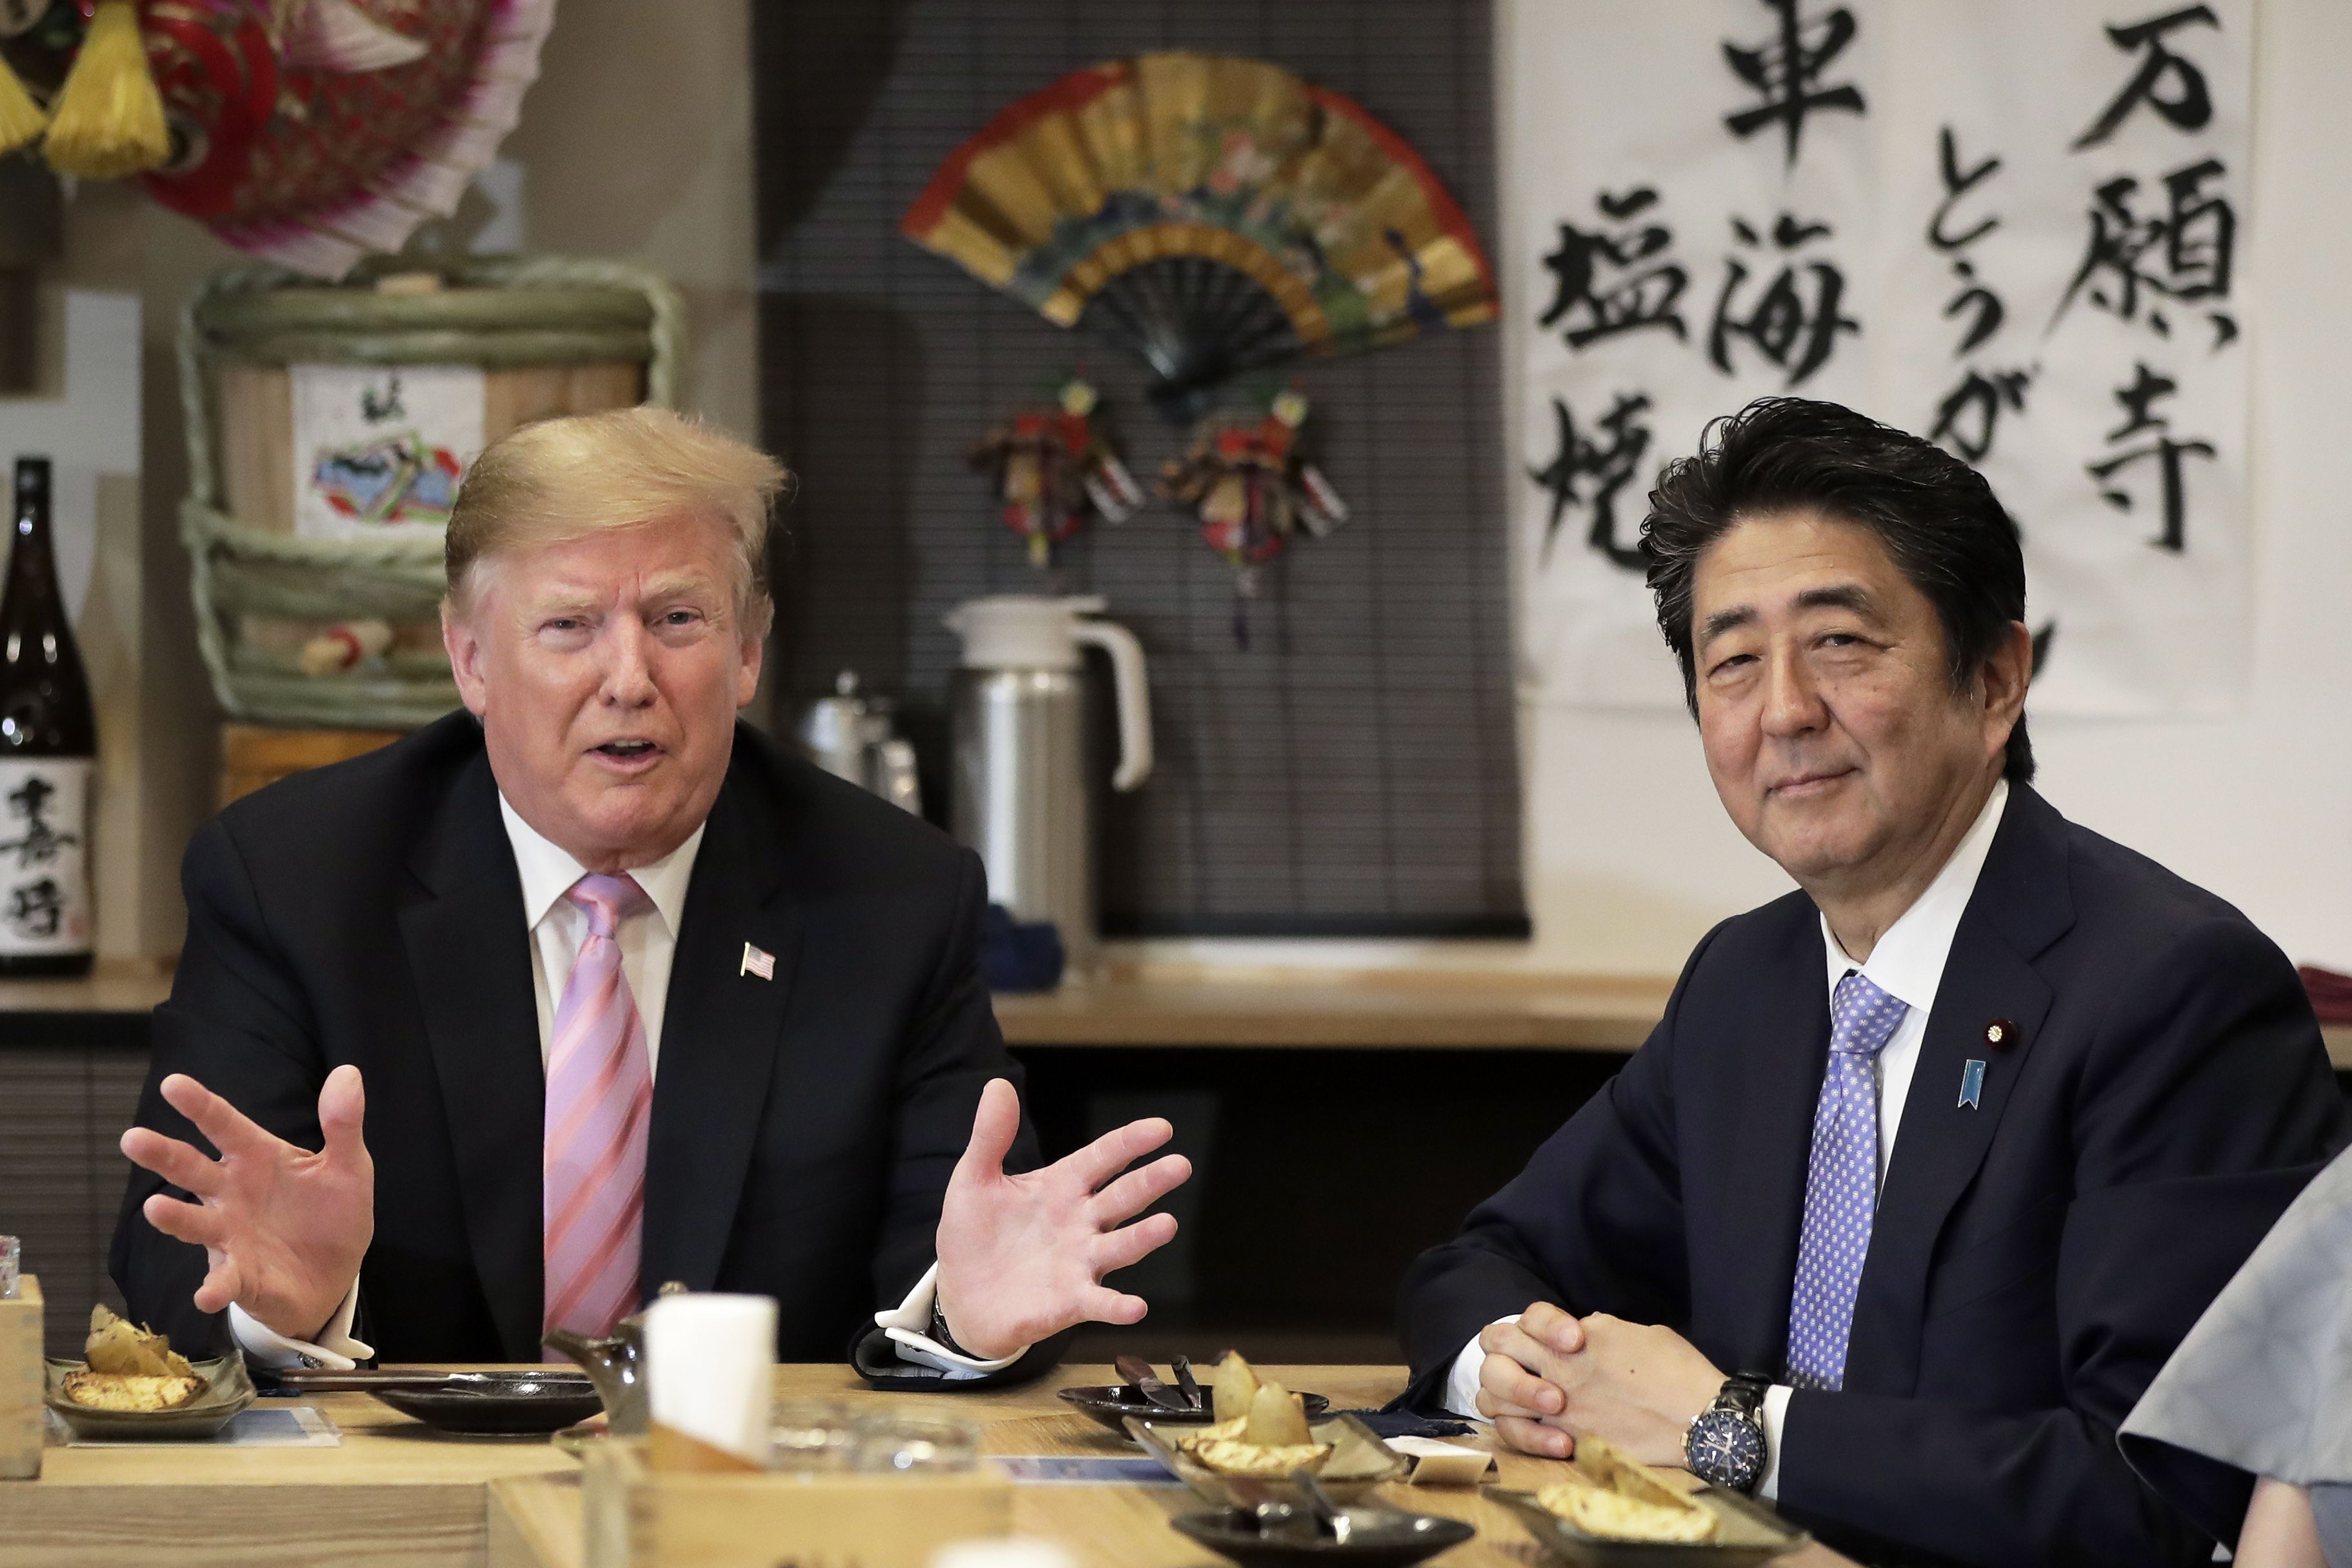 Expect a US-Japan trade deal in 6 to 9 months, says ex-USTR official